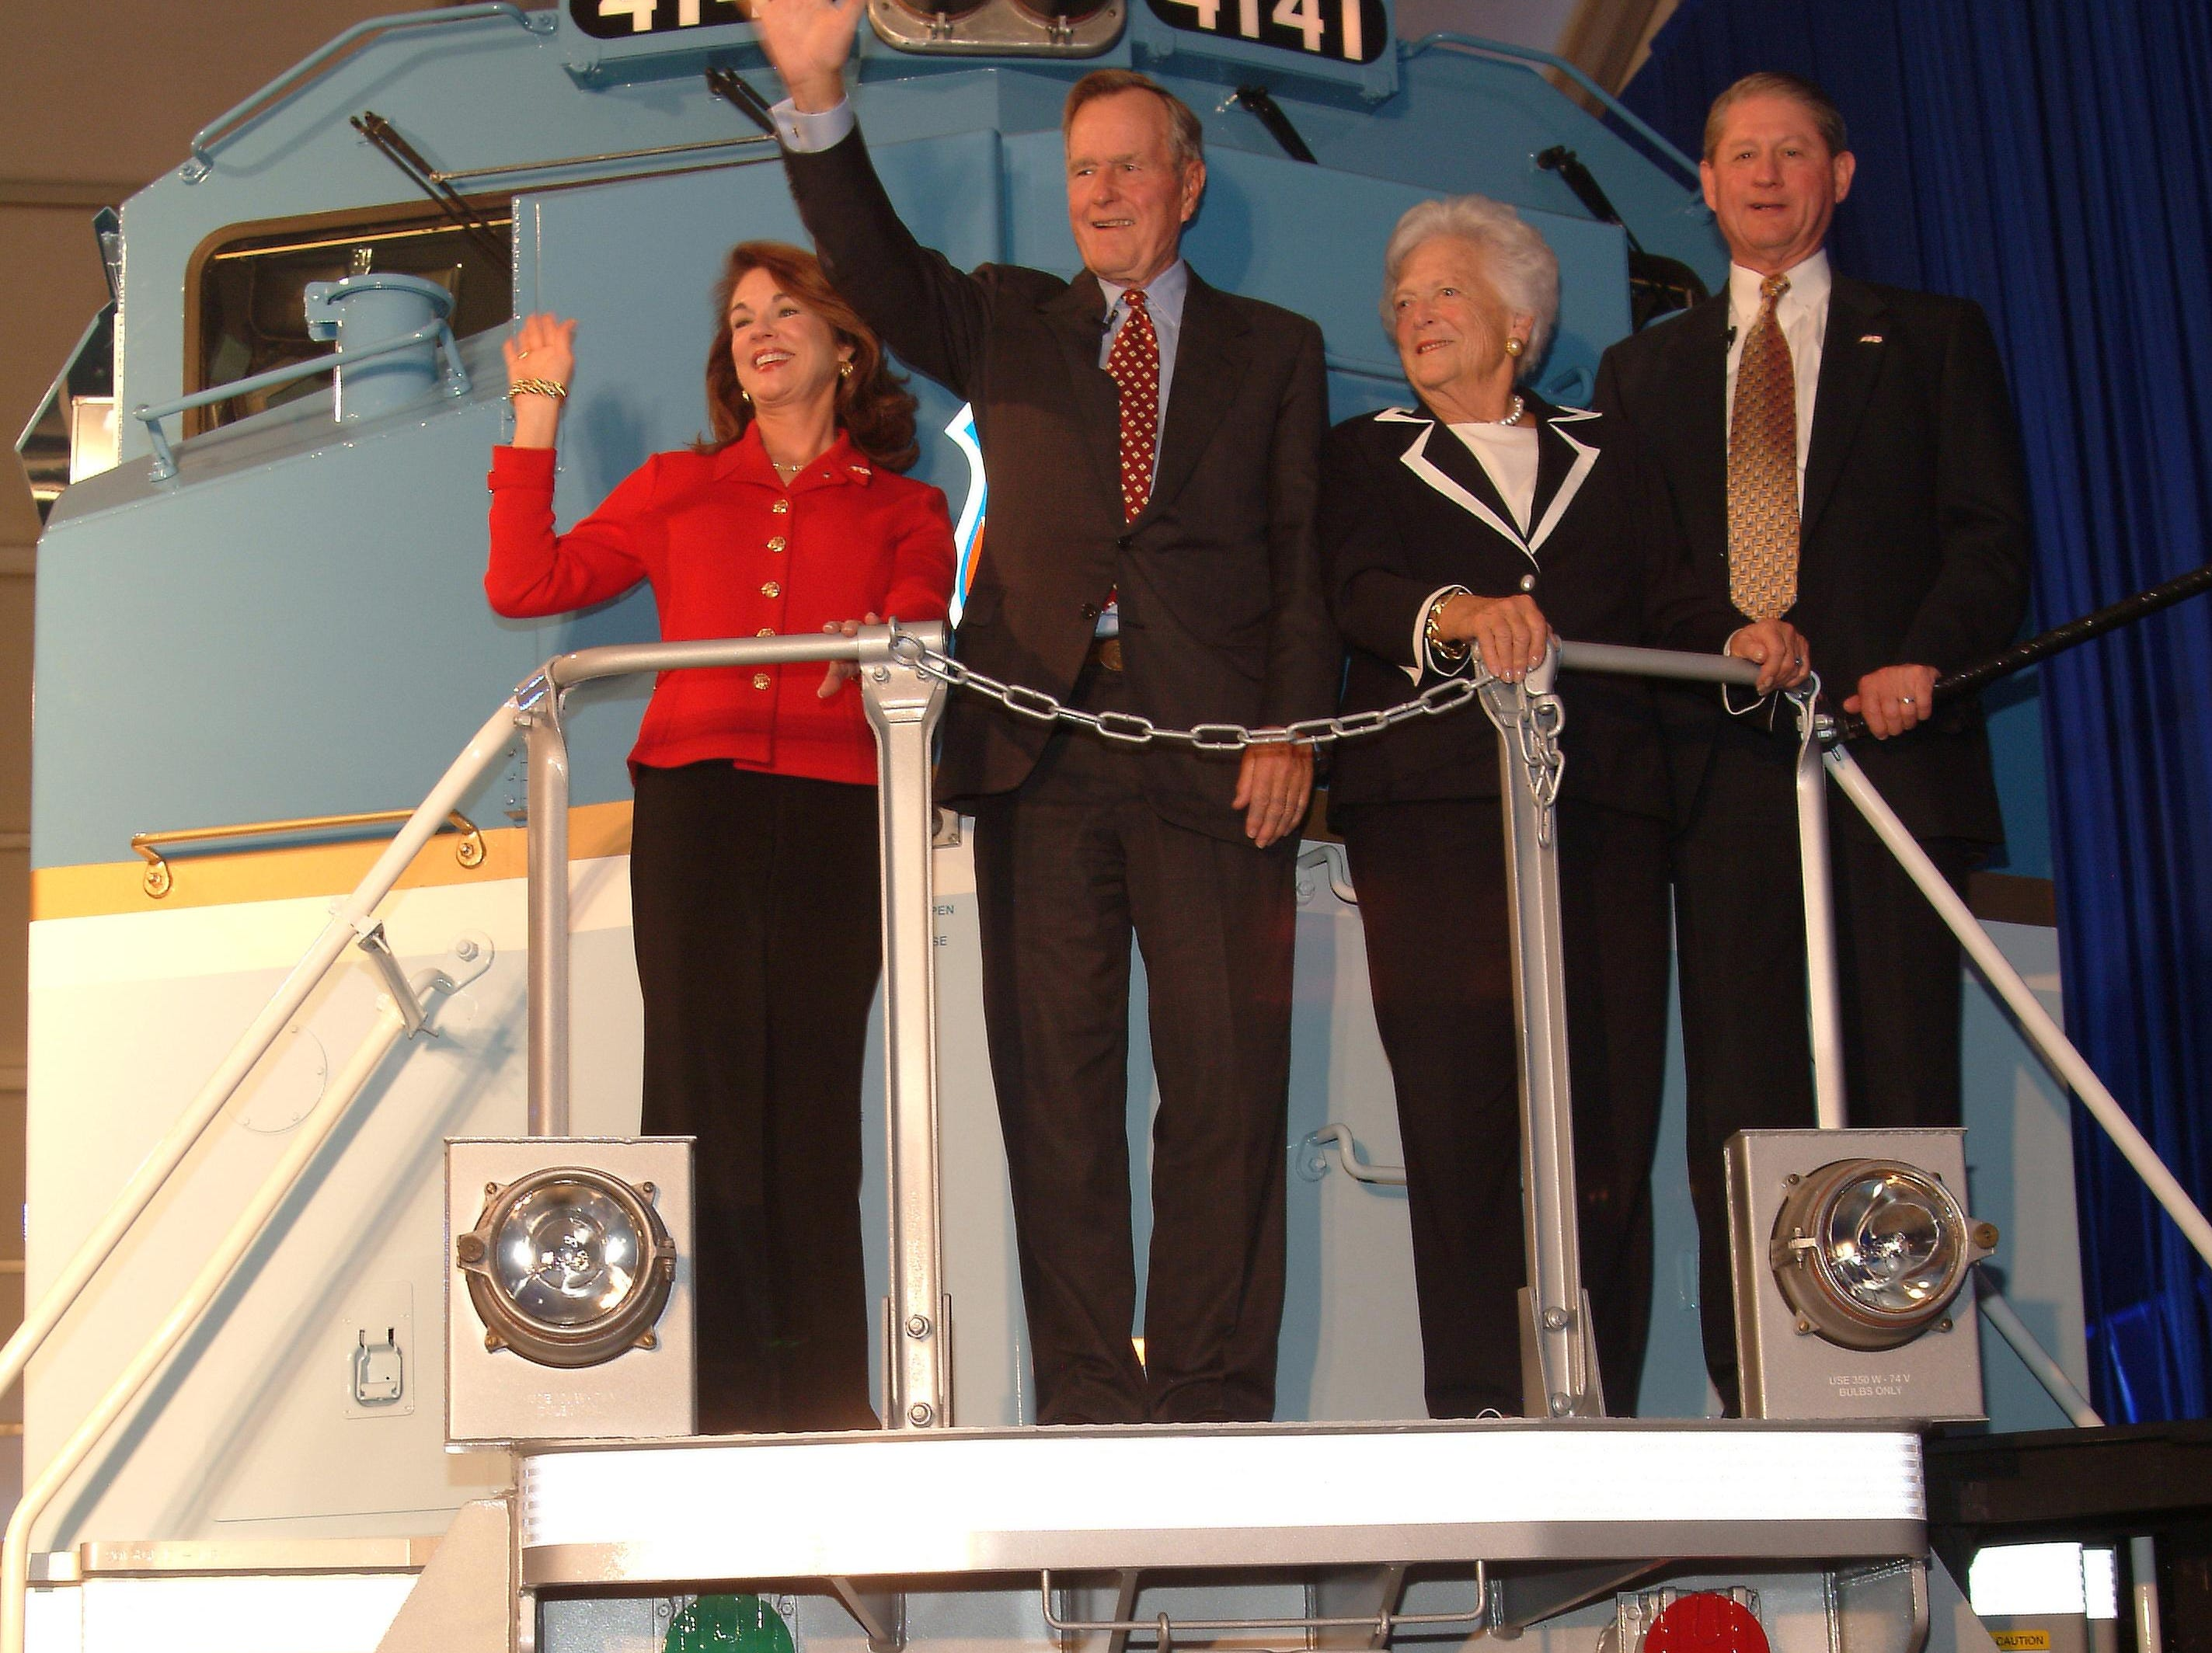 George and Barbara Bush on locomotive No. 4141 with retired Union Pacific chairman Dick Davidson and his wife Trish.